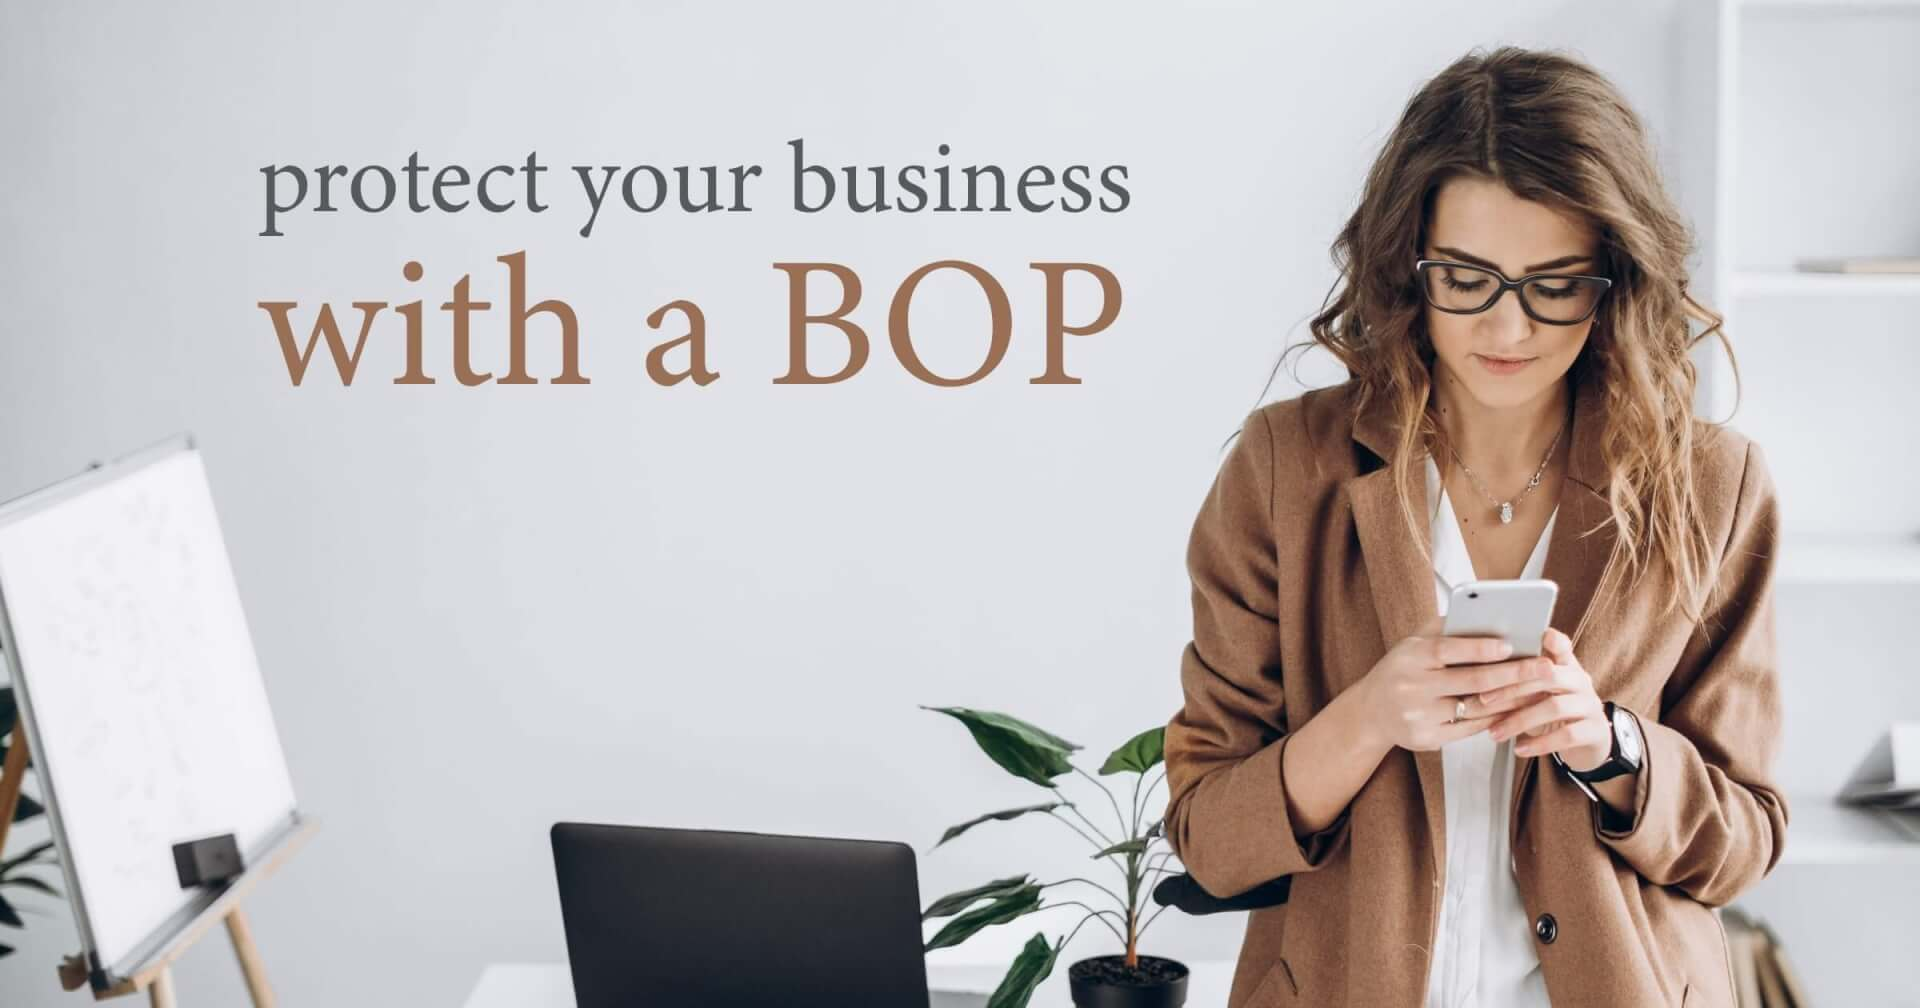 Social Business - Protect Your Business With a BOP